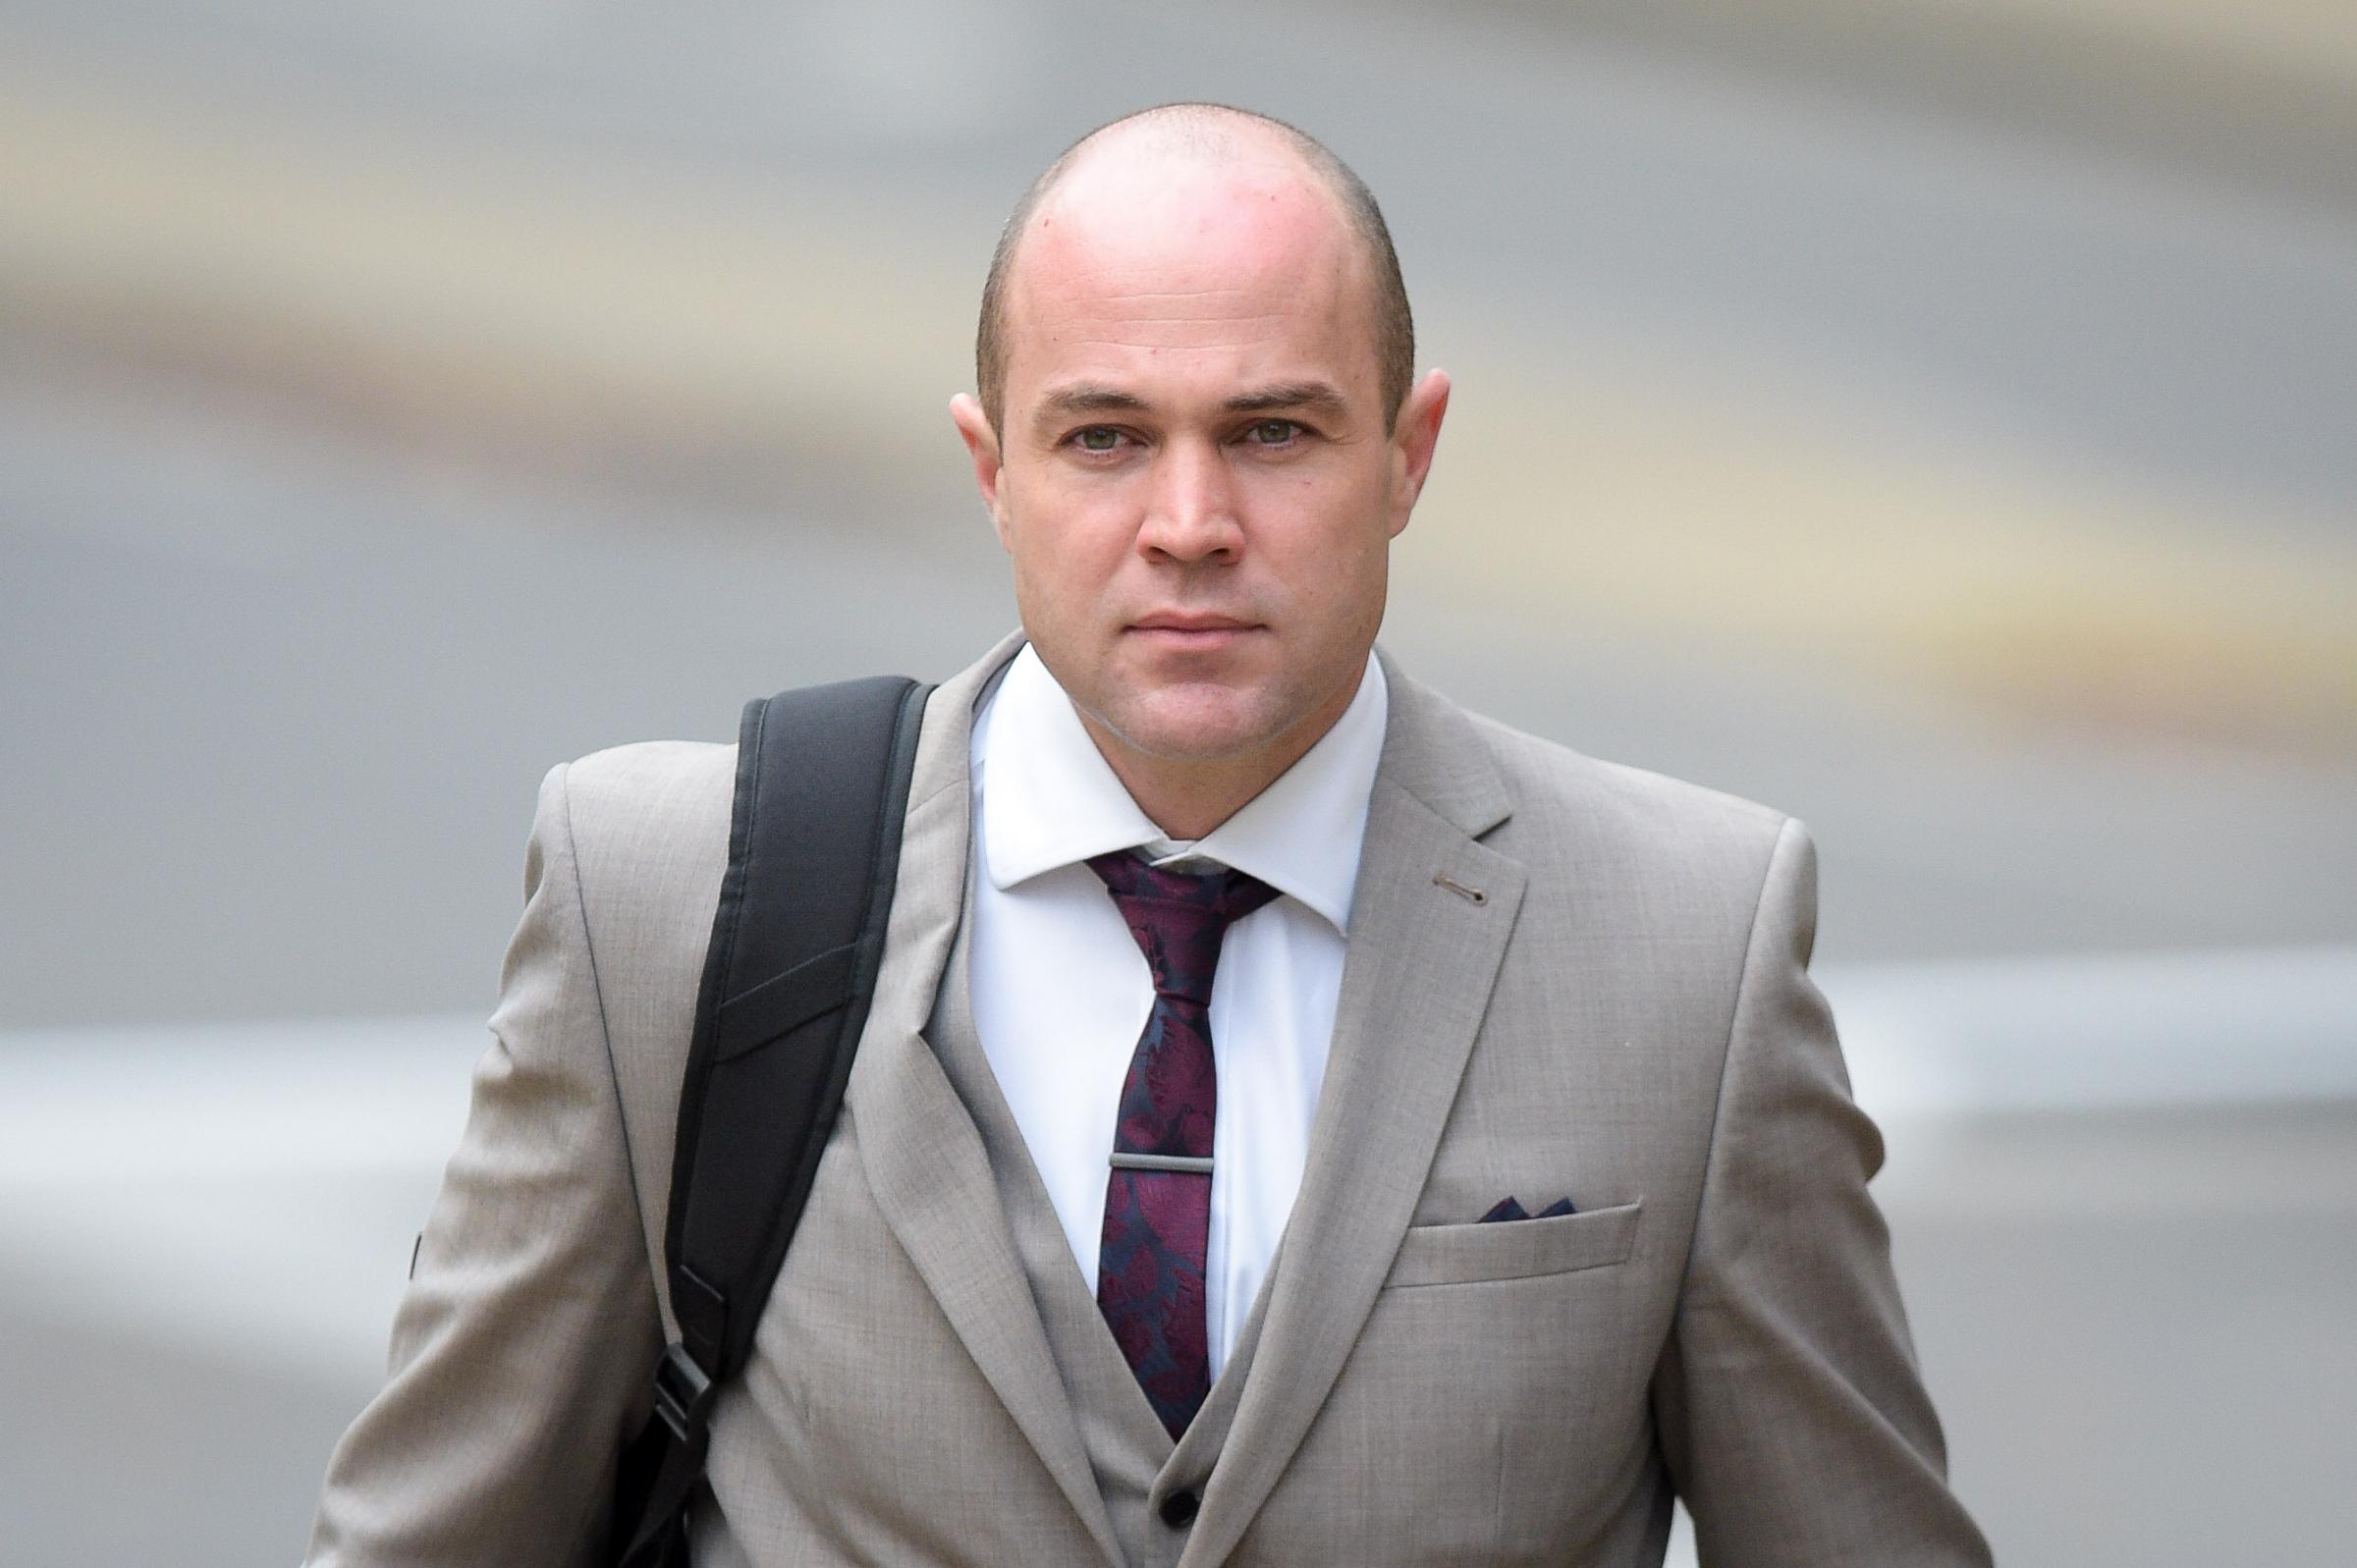 File photo dated 22/11/17 of Emile Cilliers, 37, who faces two charges of attempted murder and a third count of damaging a gas fitting at Winchester Crown Court after being accused of attempting to murder his wife Victoria. PRESS ASSOCIATION Photo. Issue